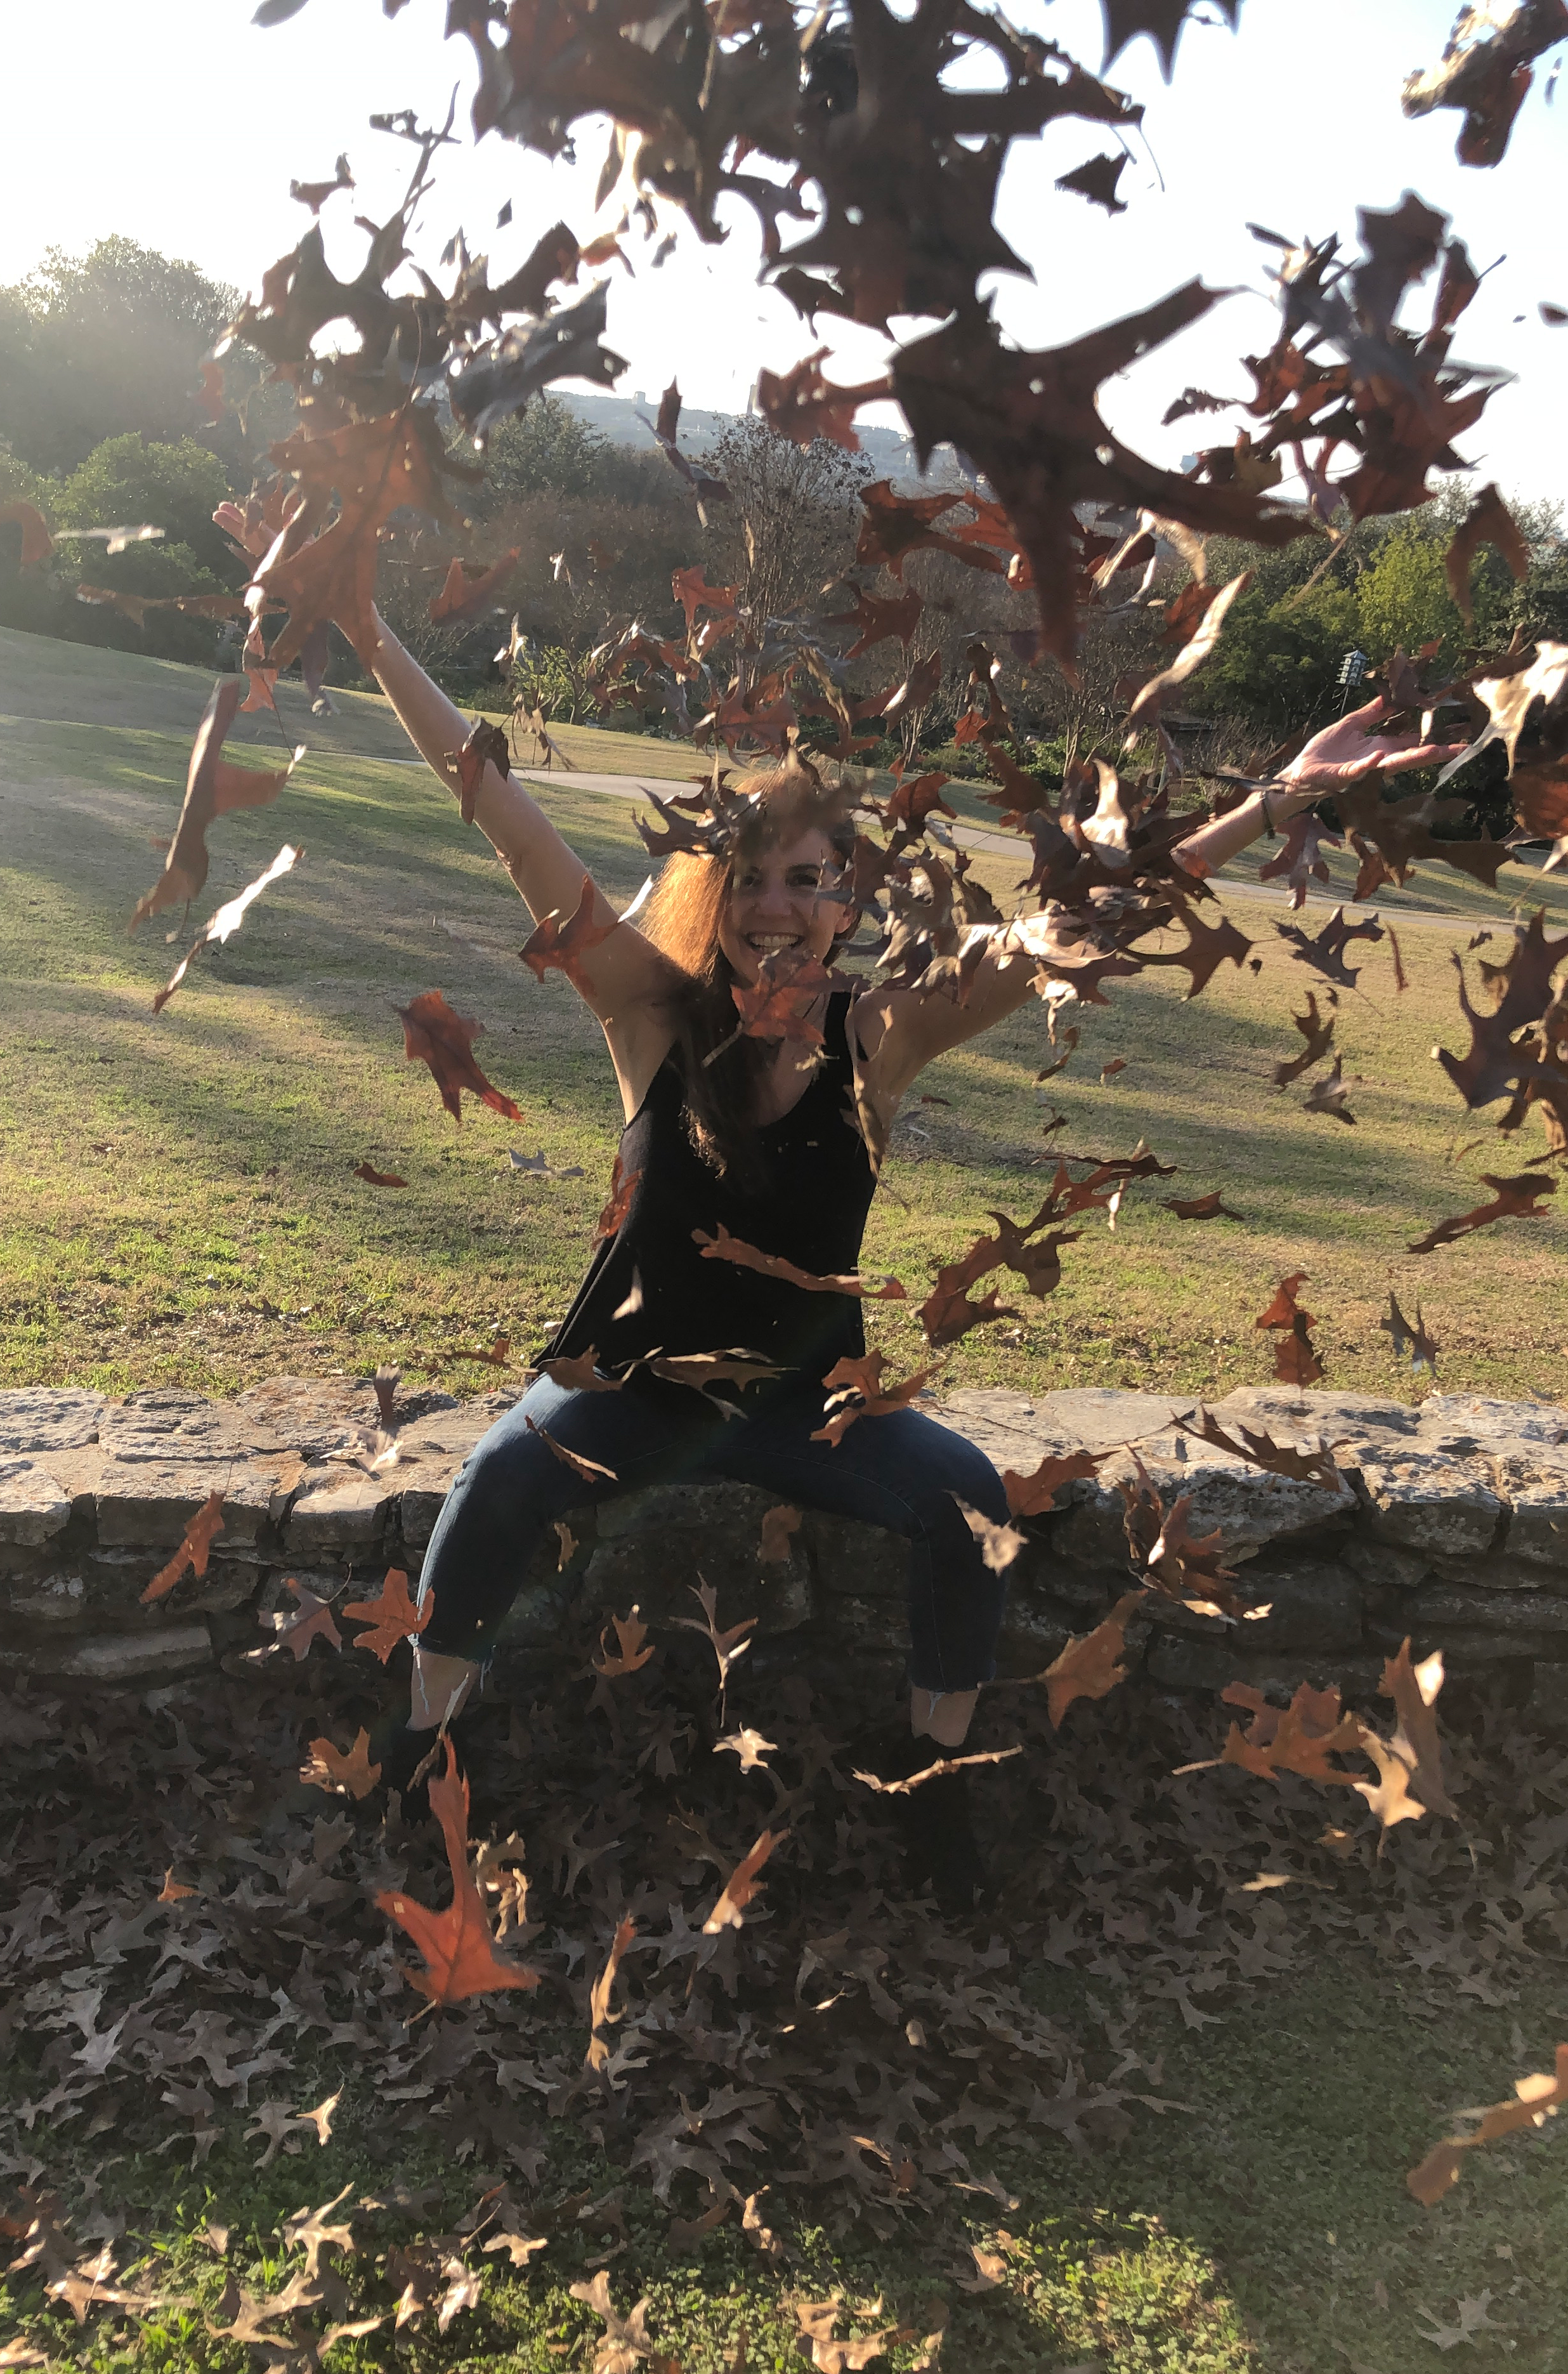 Leslie throws fall leaves into the air & they fall, dancing in the breeze